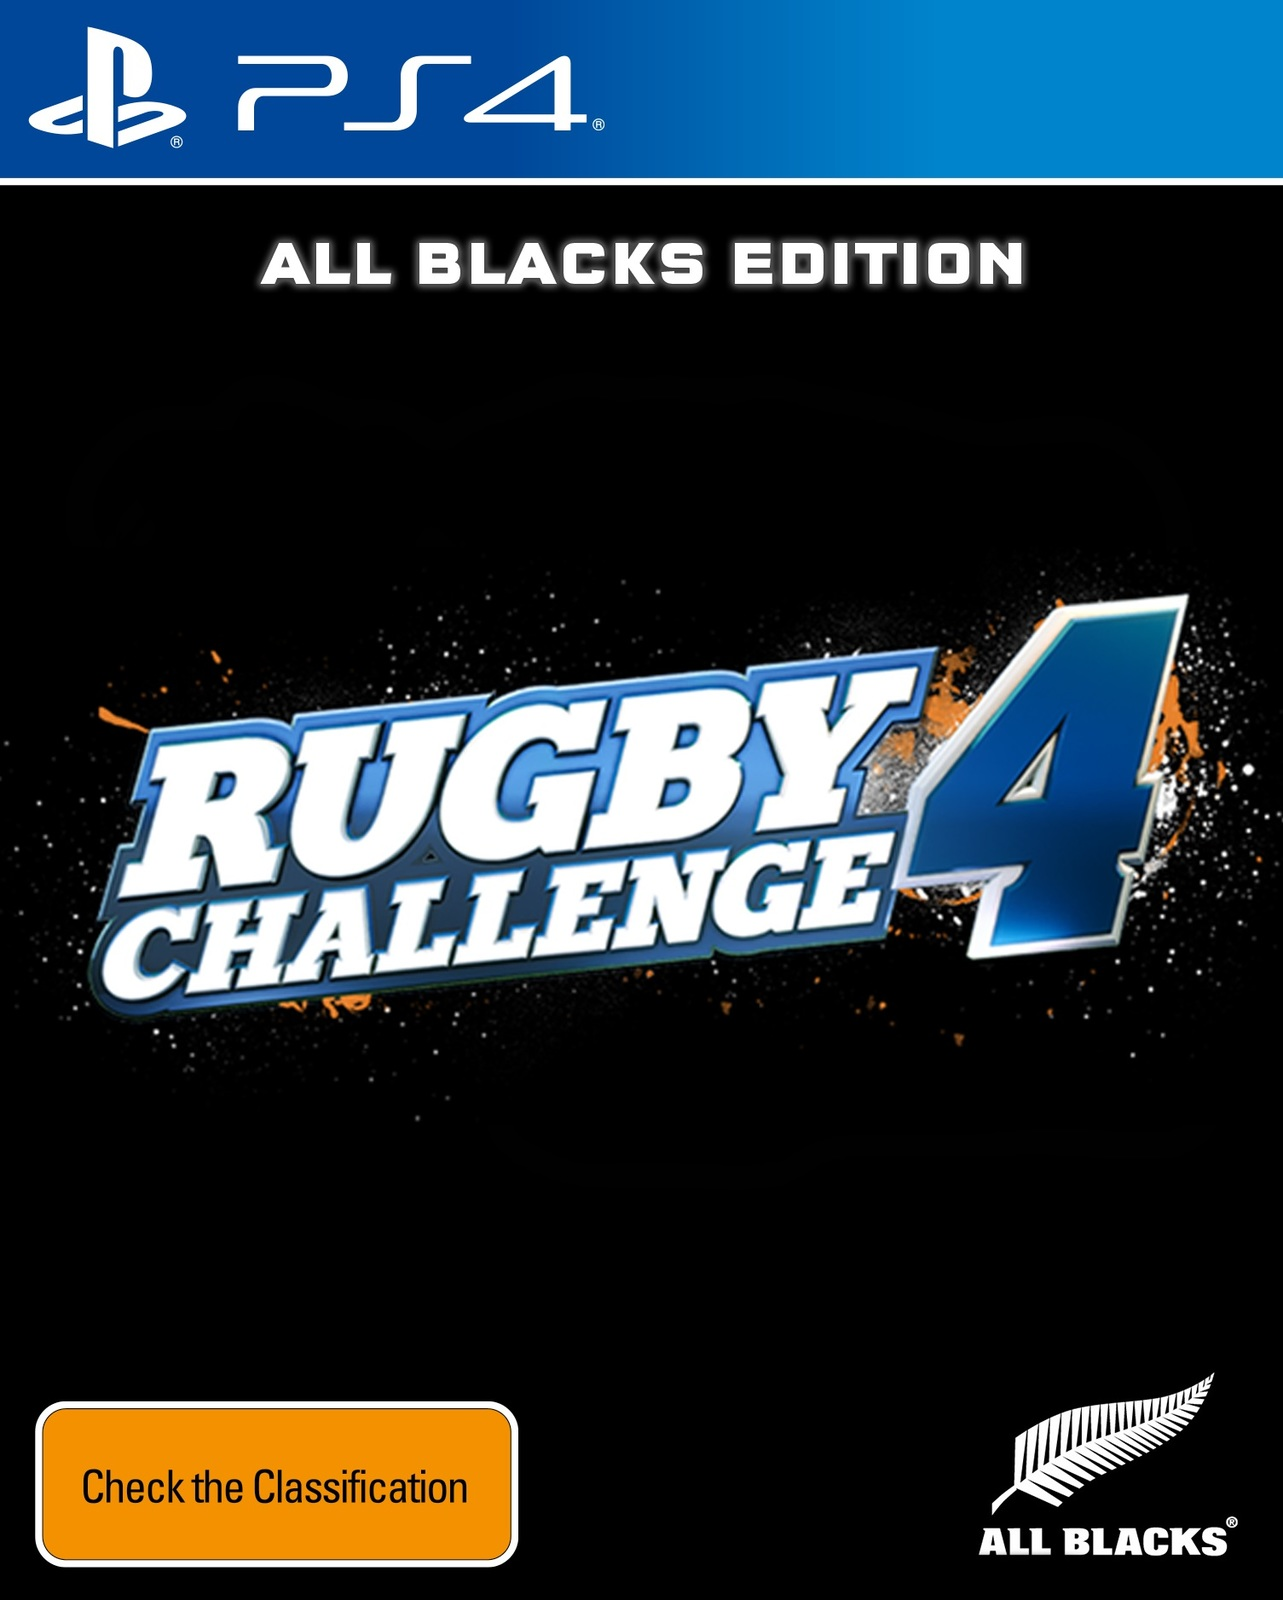 All Blacks Rugby Challenge 4 for PS4 image